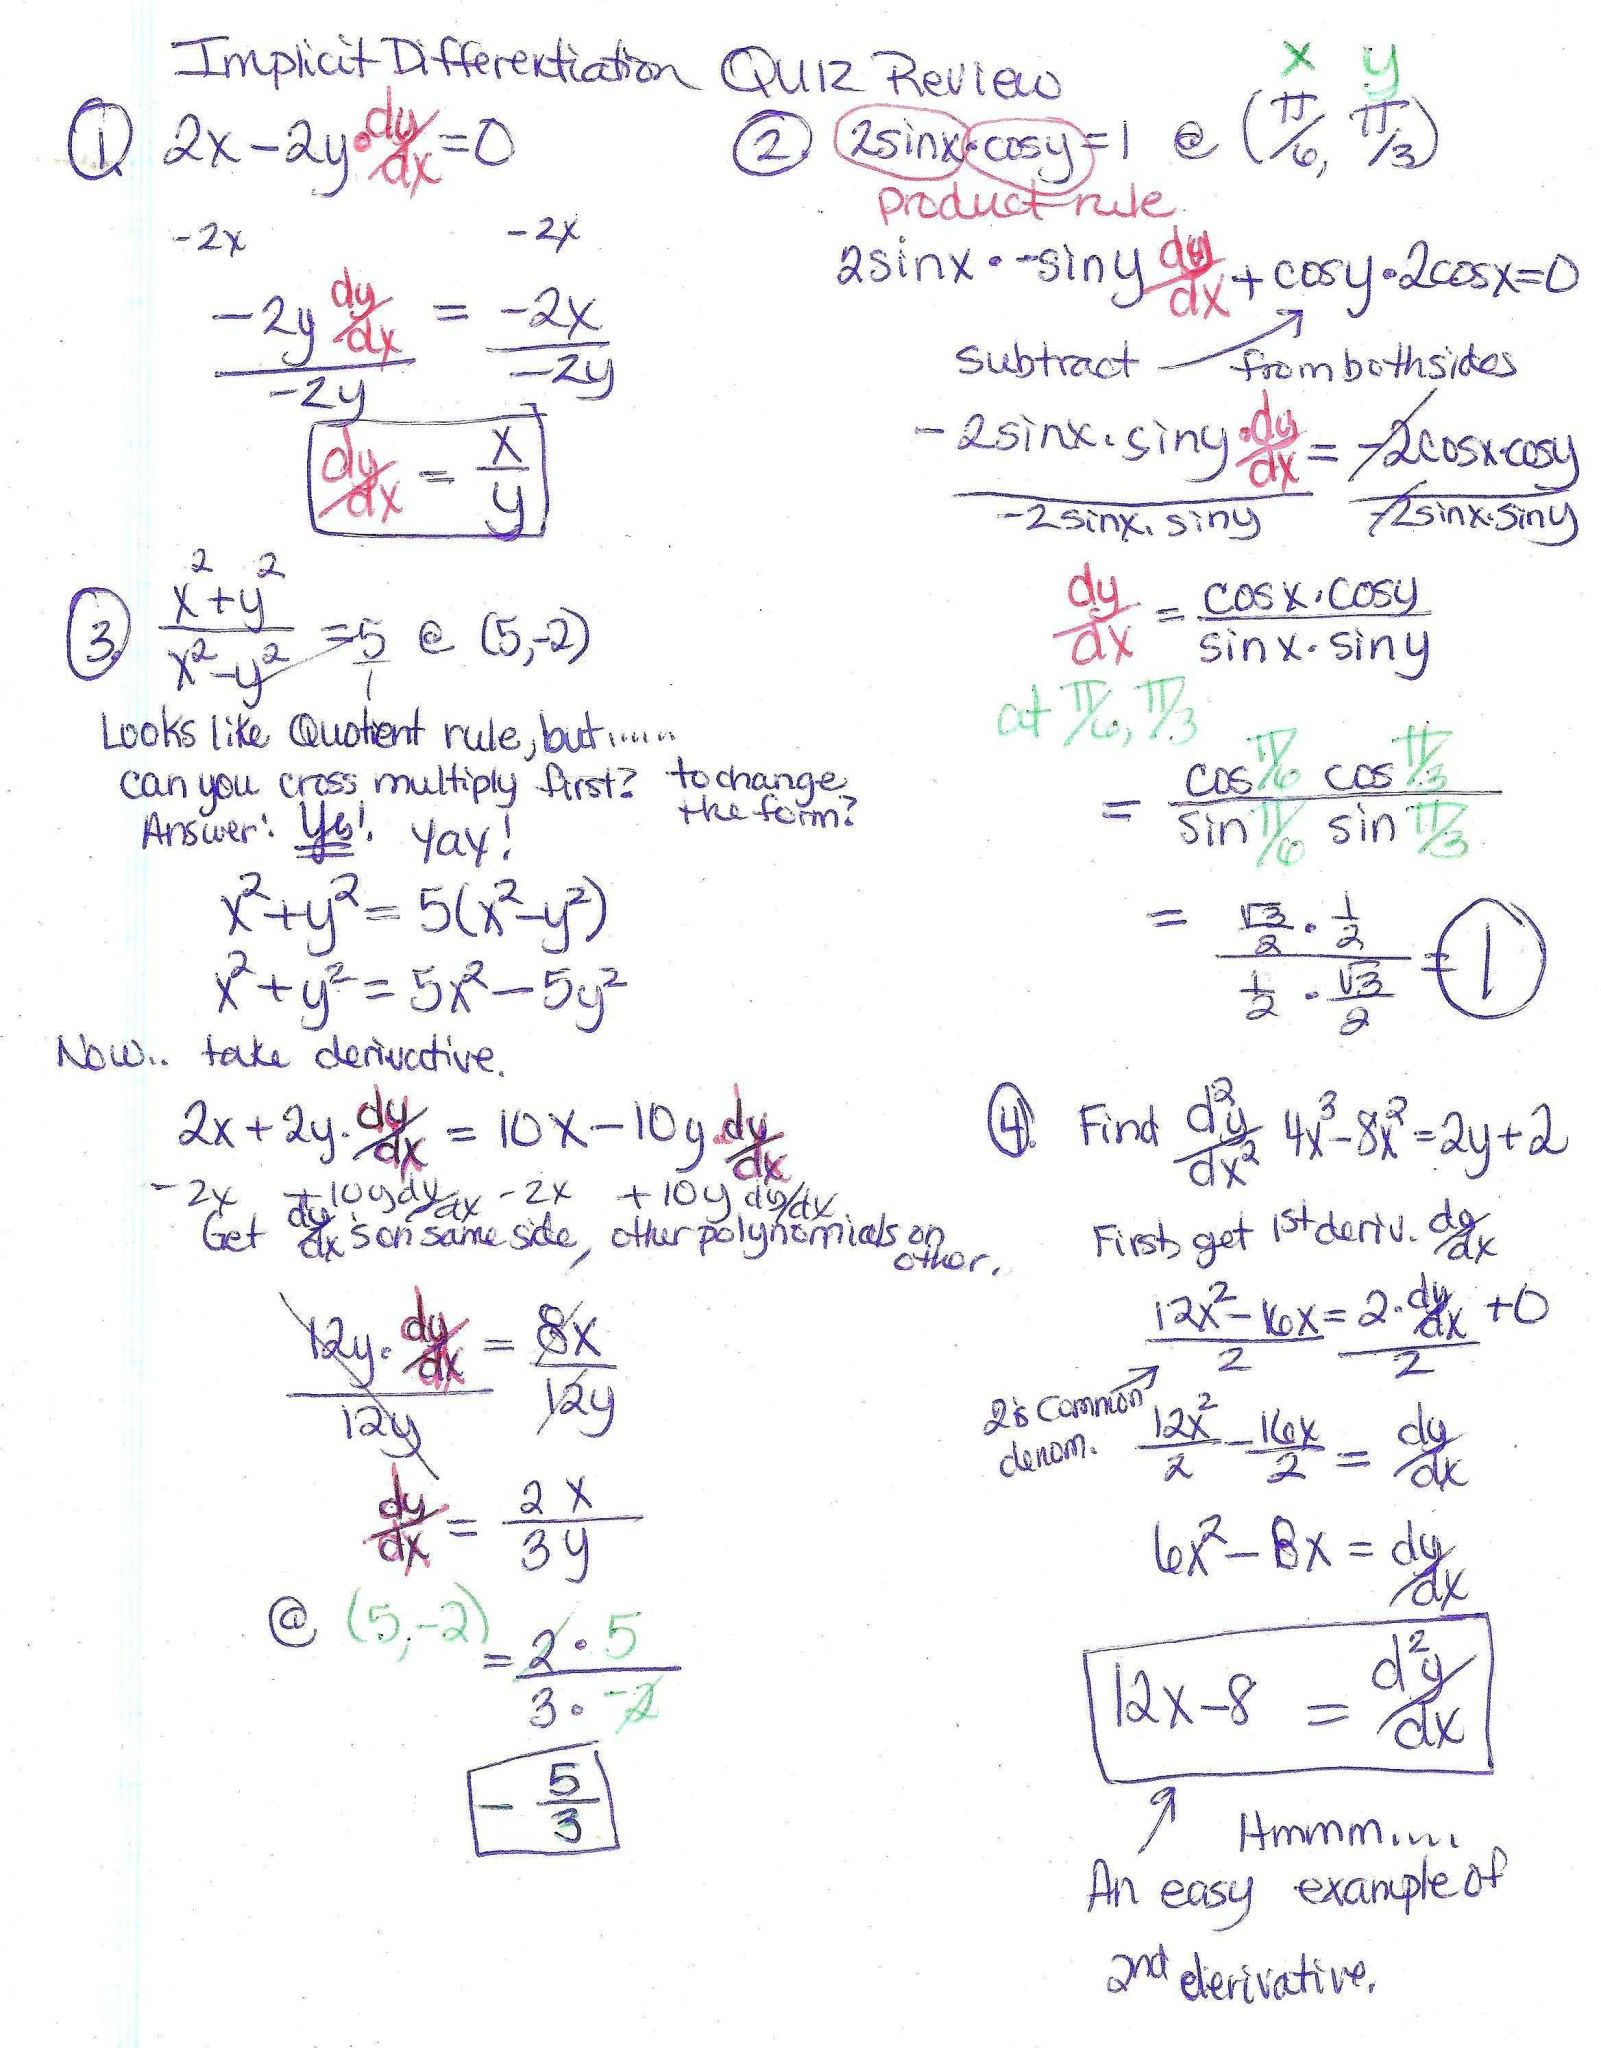 Conduction Convection Or Radiation Worksheet Answers And